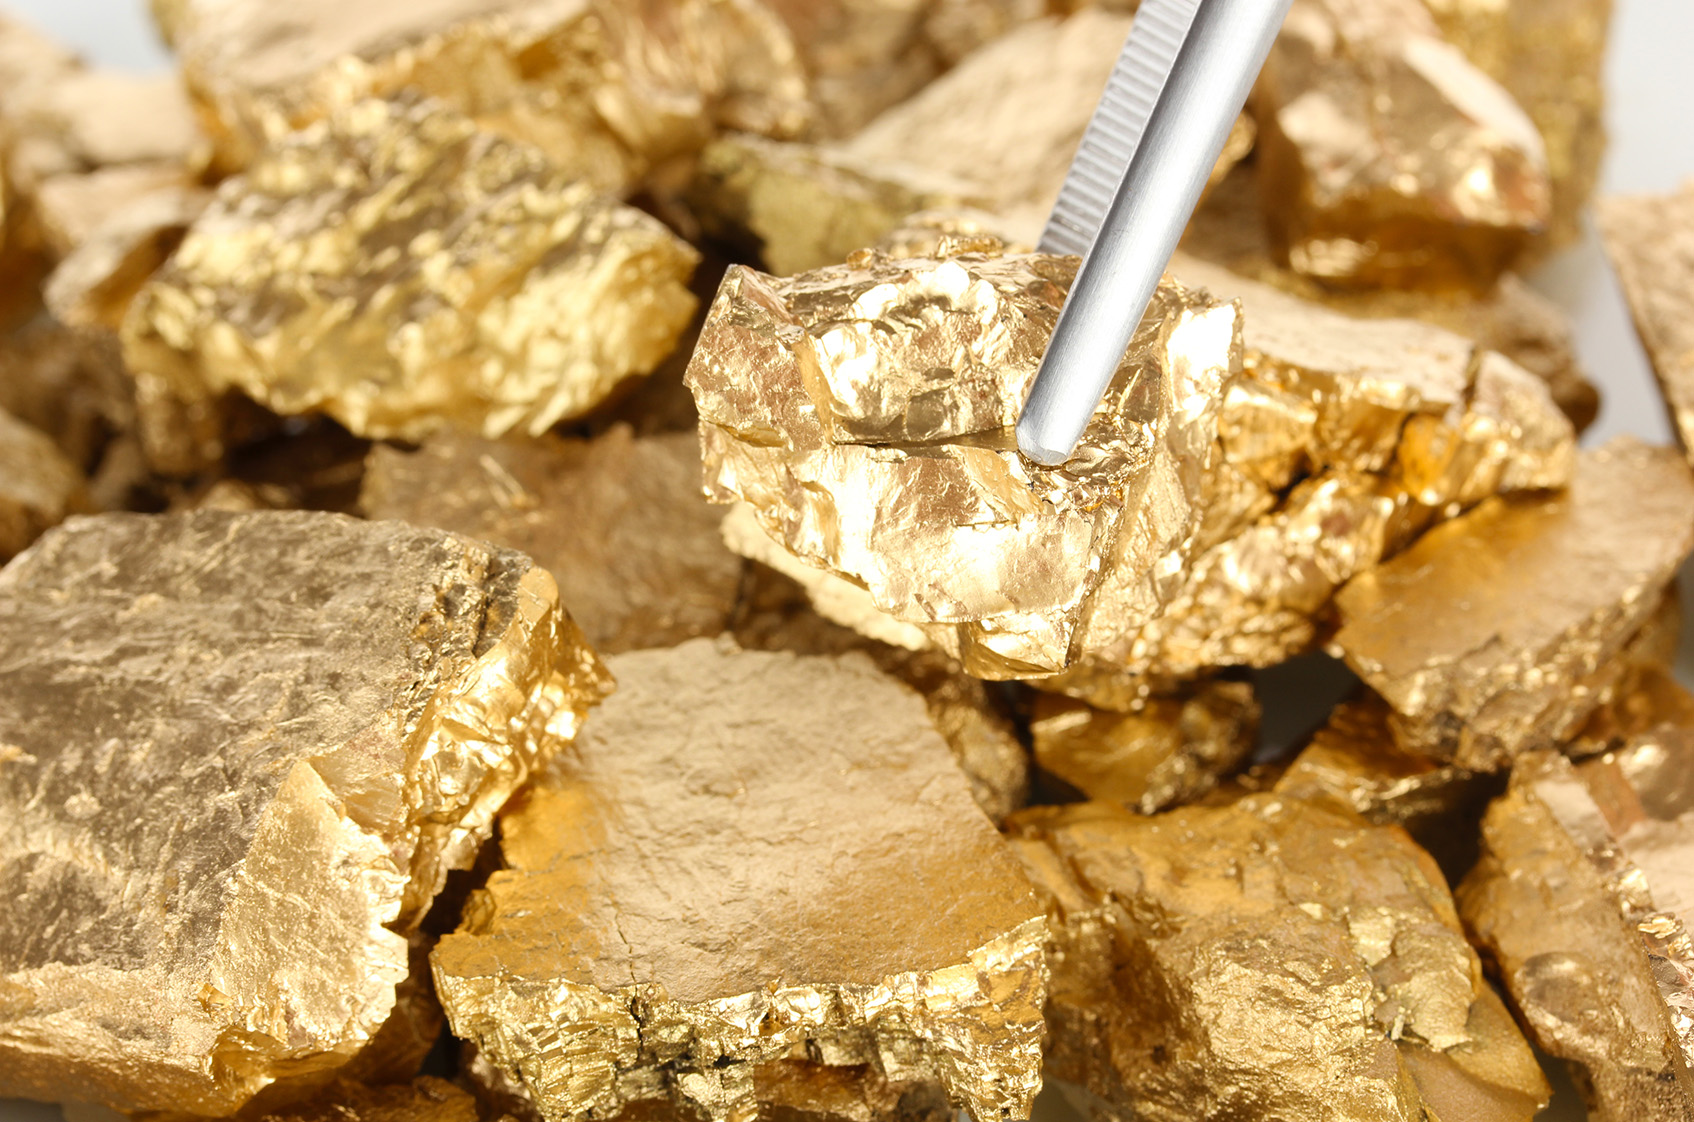 4 Gold Mining Stocks Trading at a Discount to 2019 Cash Flow